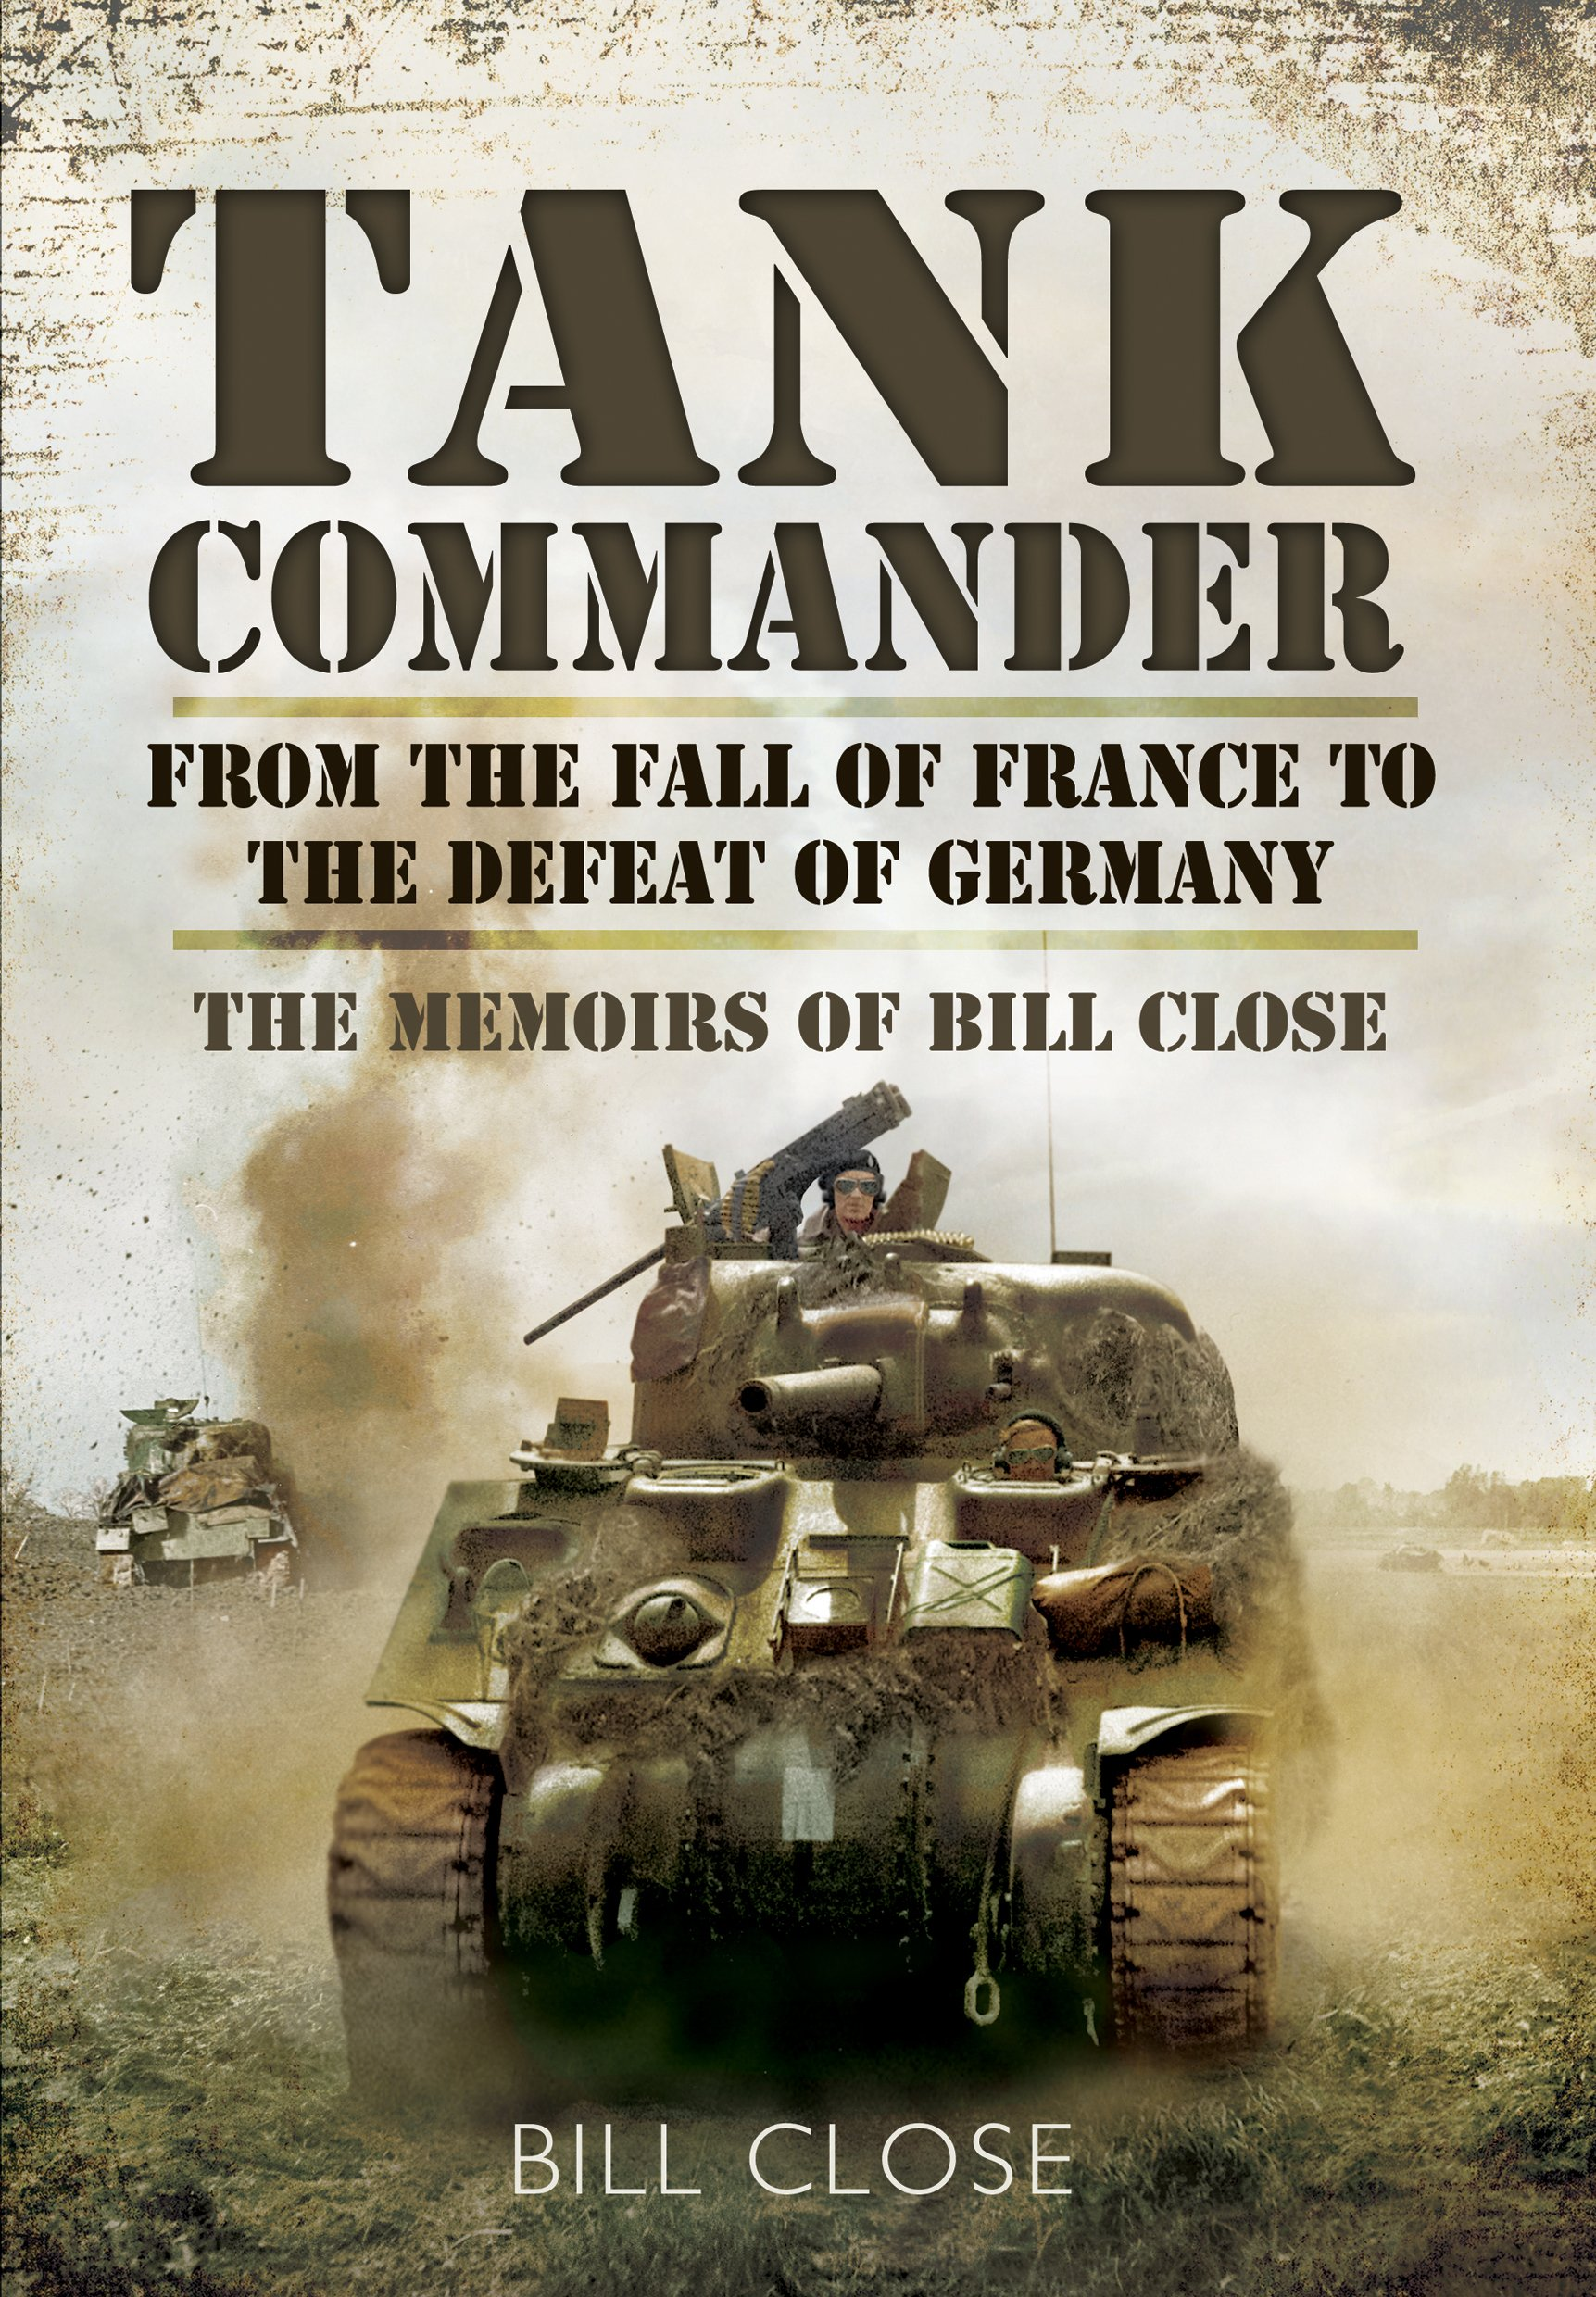 Download Tank Commander: From the Fall of France to the Defeat of Germany - The Memoirs of Bill Close pdf epub